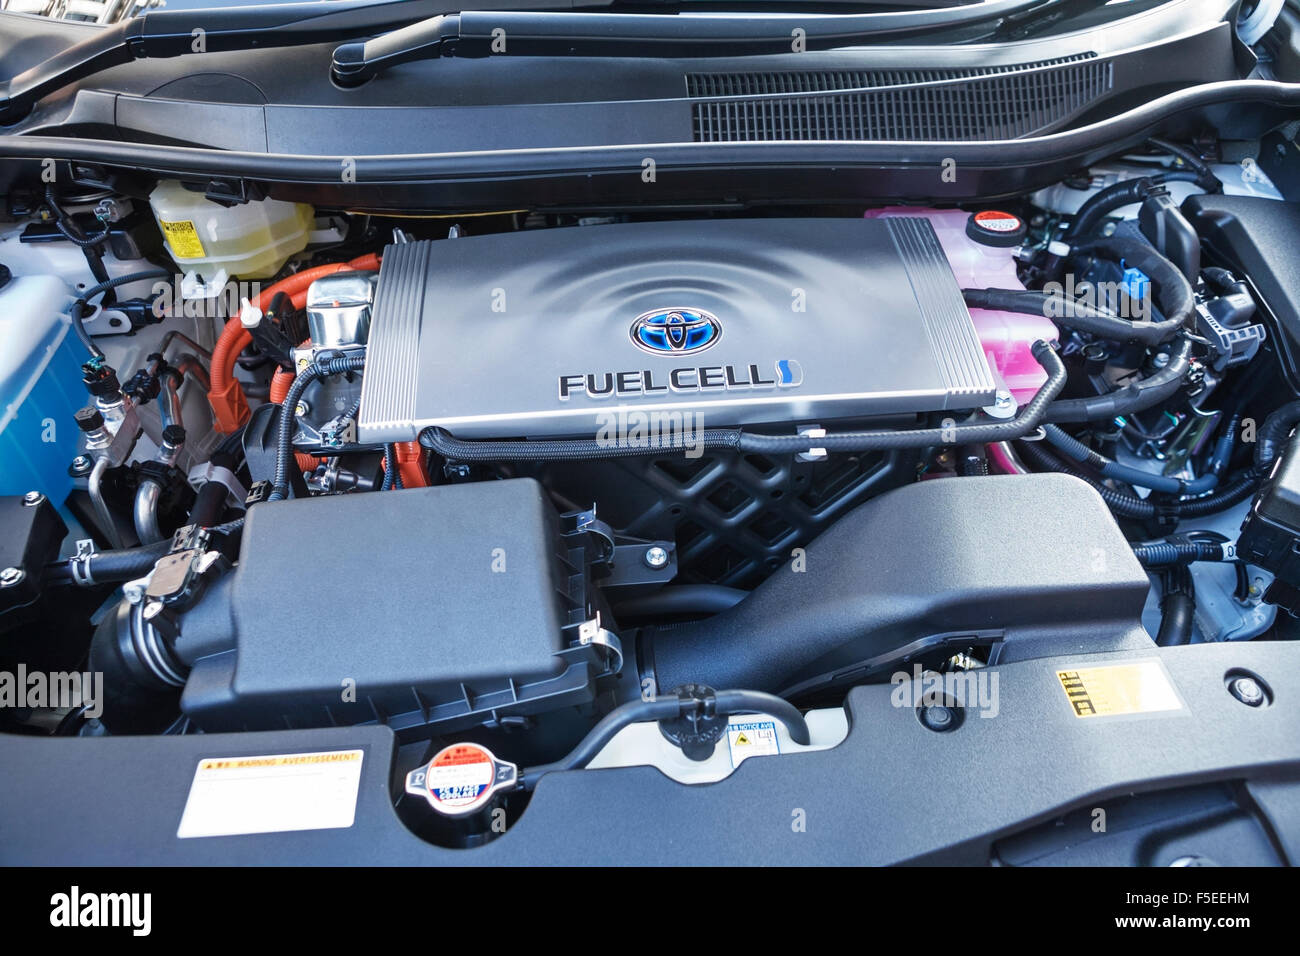 Toyota electric car fuel cell and engine. - Stock Image